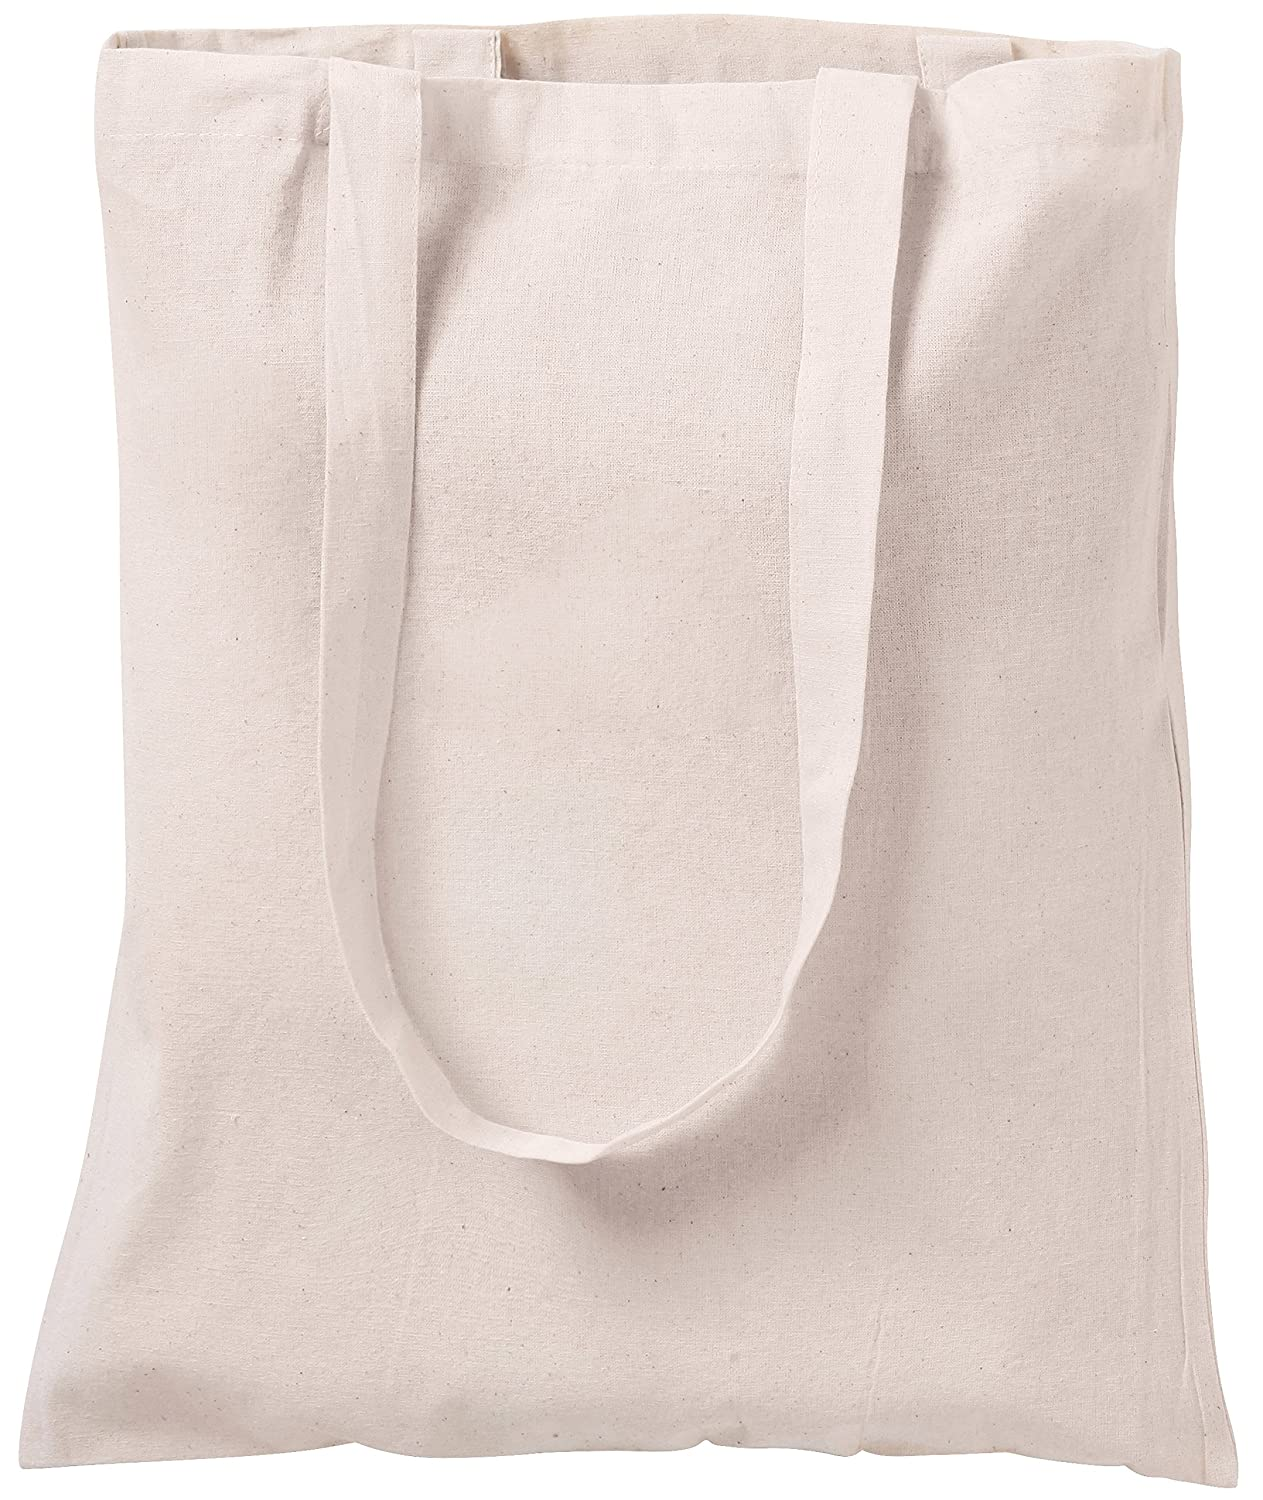 10 NATURAL COTTON TOTE BAGS SHOPPERS NATURAL CENTRIX